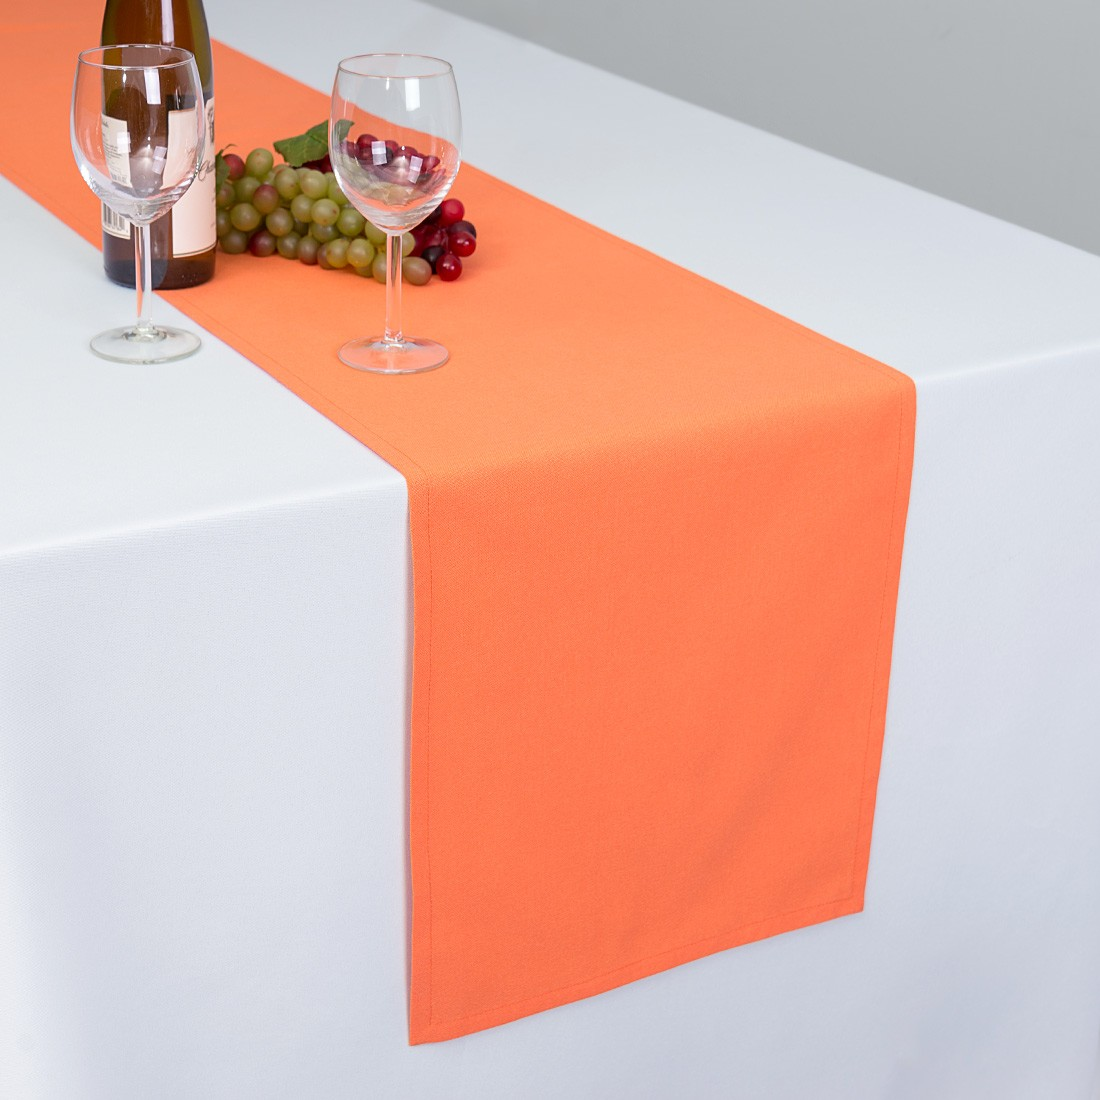 Linen Tablecloth Cotton Table Runner, Orange by Linen Tablecloth